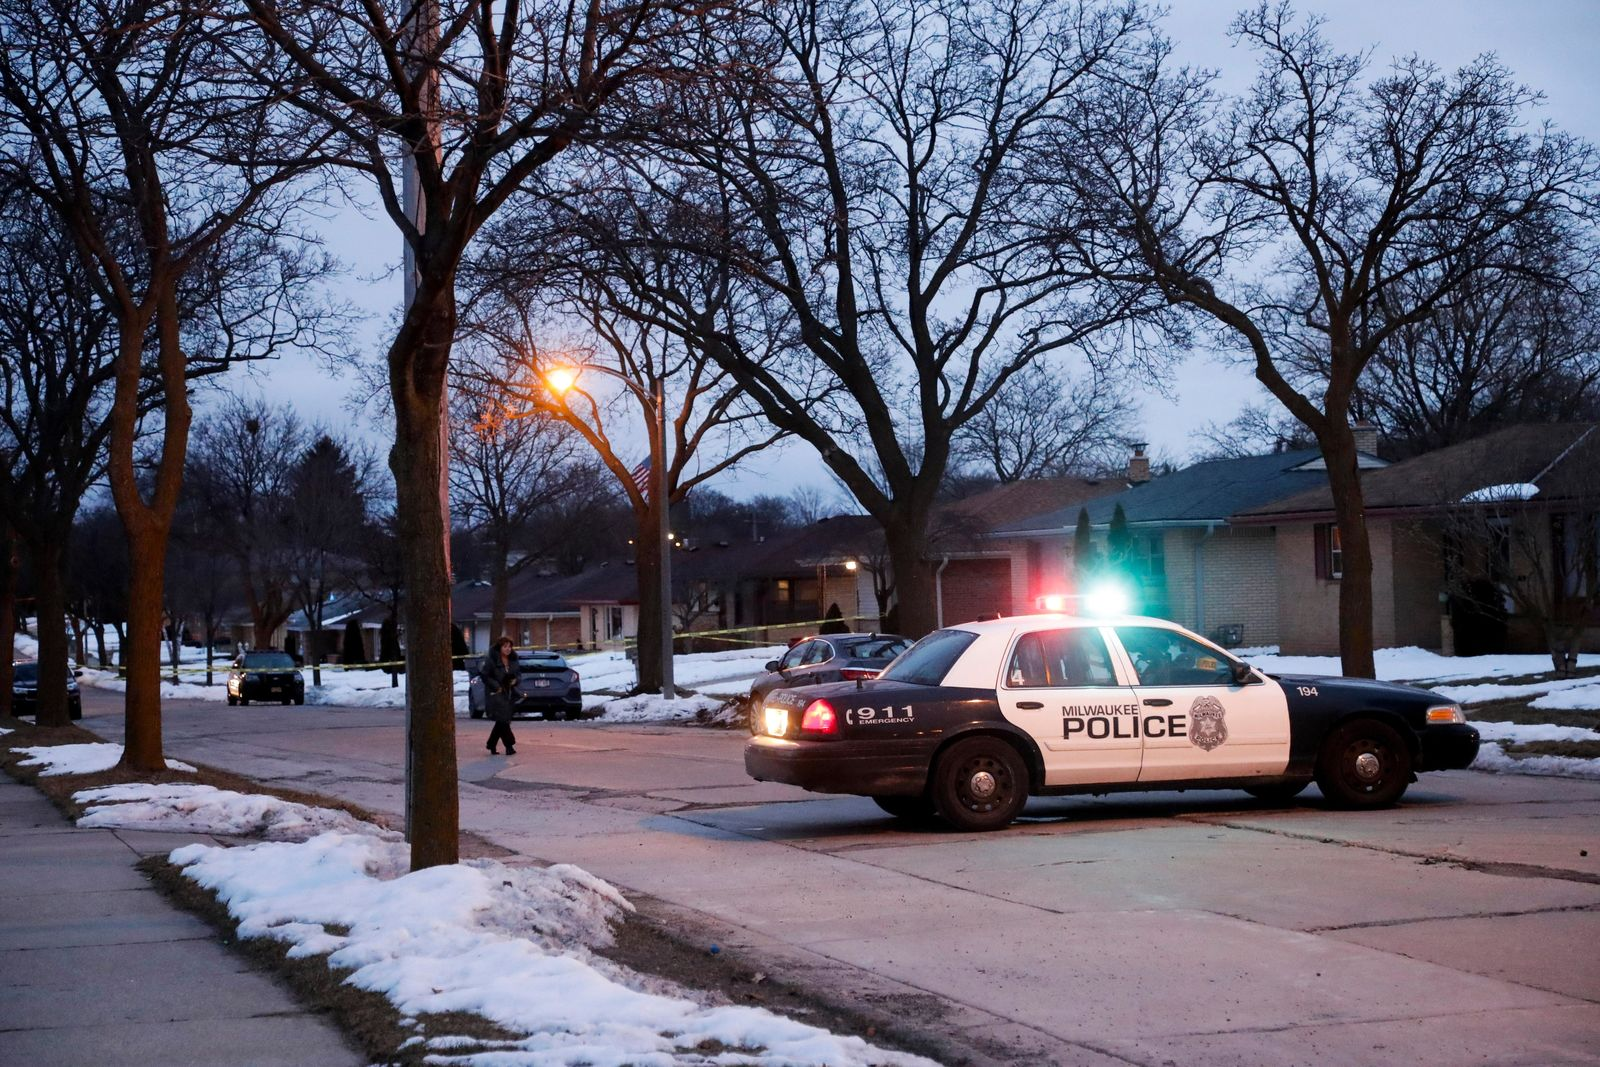 Police are seen outside of a house near Potomac and Courtland after a shooting at Molson Coors, Wednesday Feb. 26, 2020, in Milwaukee. (AP Photo/Morry Gash)